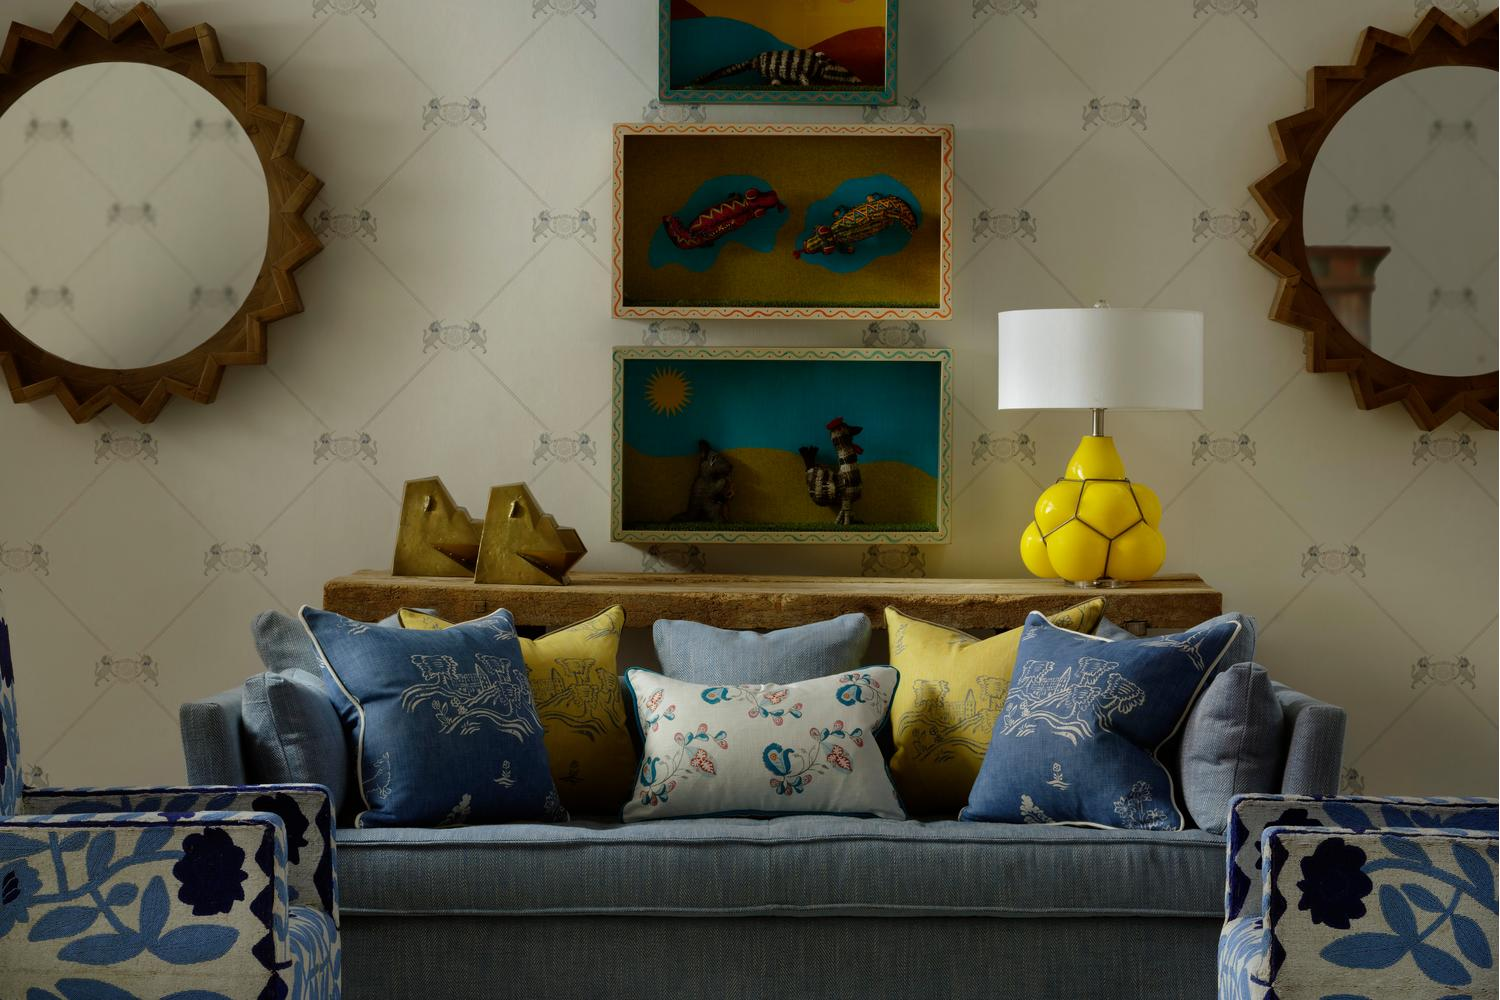 Unicorn Grey Wallpaper with Bloomsbury Sofa in Summit Beach and Psycho Sprig Tropical Blue and Friendly Folk Happy Blue and Provencal Yellow scatter cushions